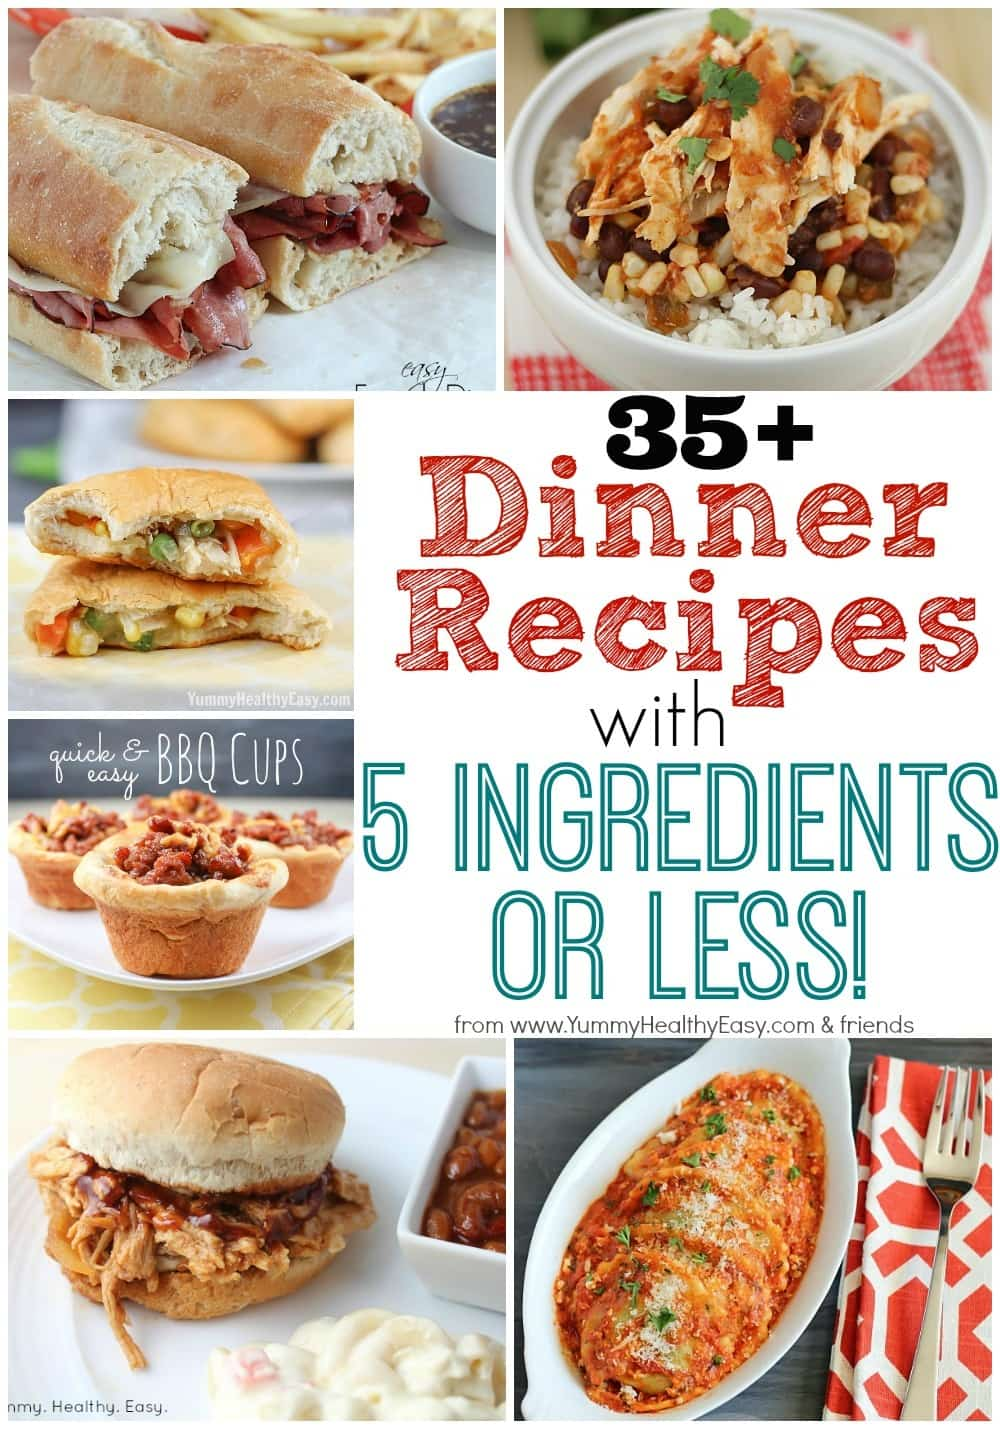 5 Easy Makeup Looks In Under 10 Minutes: 35+ Dinner Recipes With 5 Ingredients Or Less!